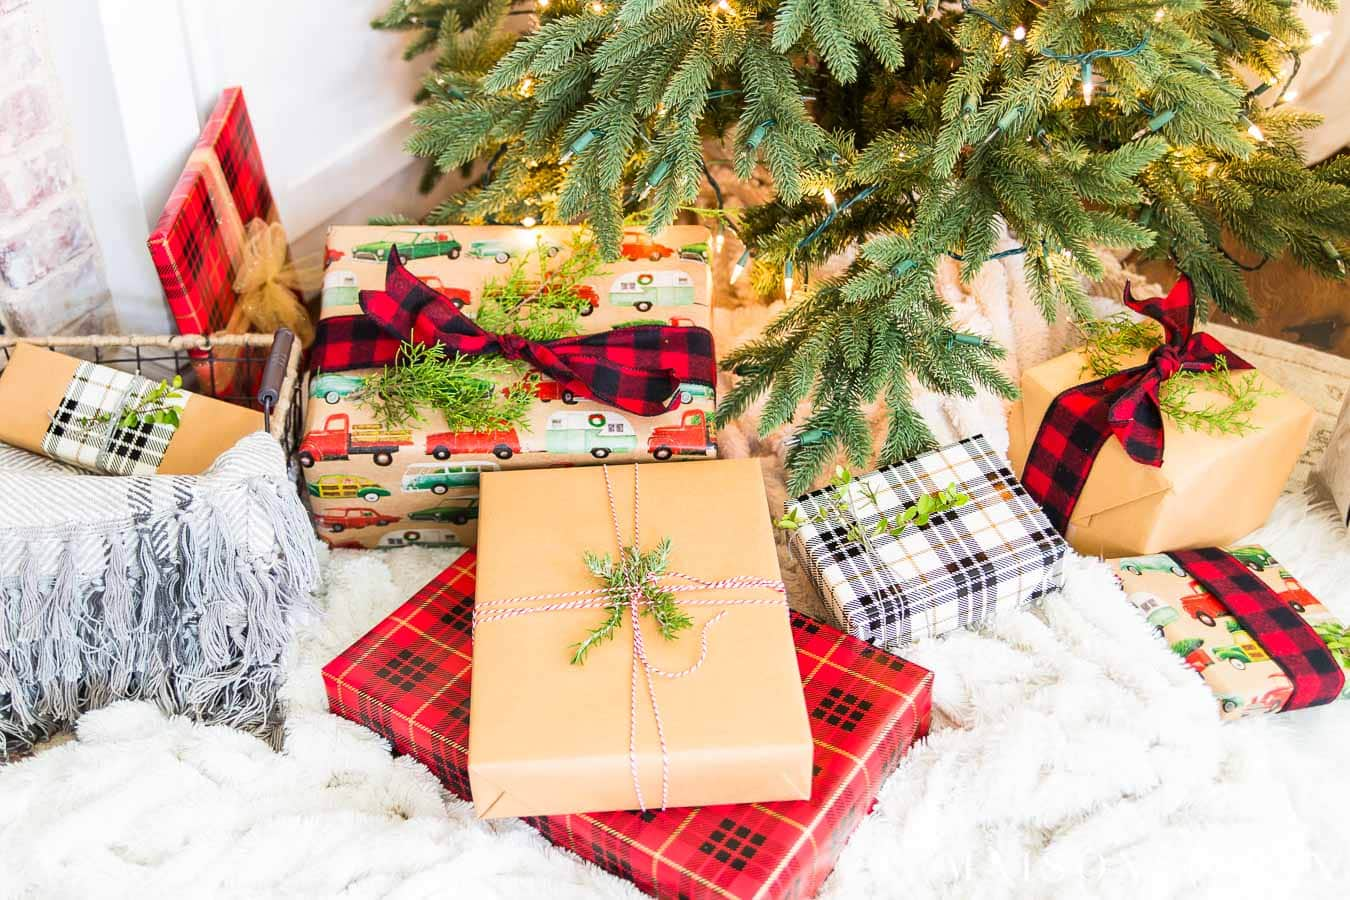 christmas presents under tree with brown paper and plaid wrapping paper | Maison de Pax